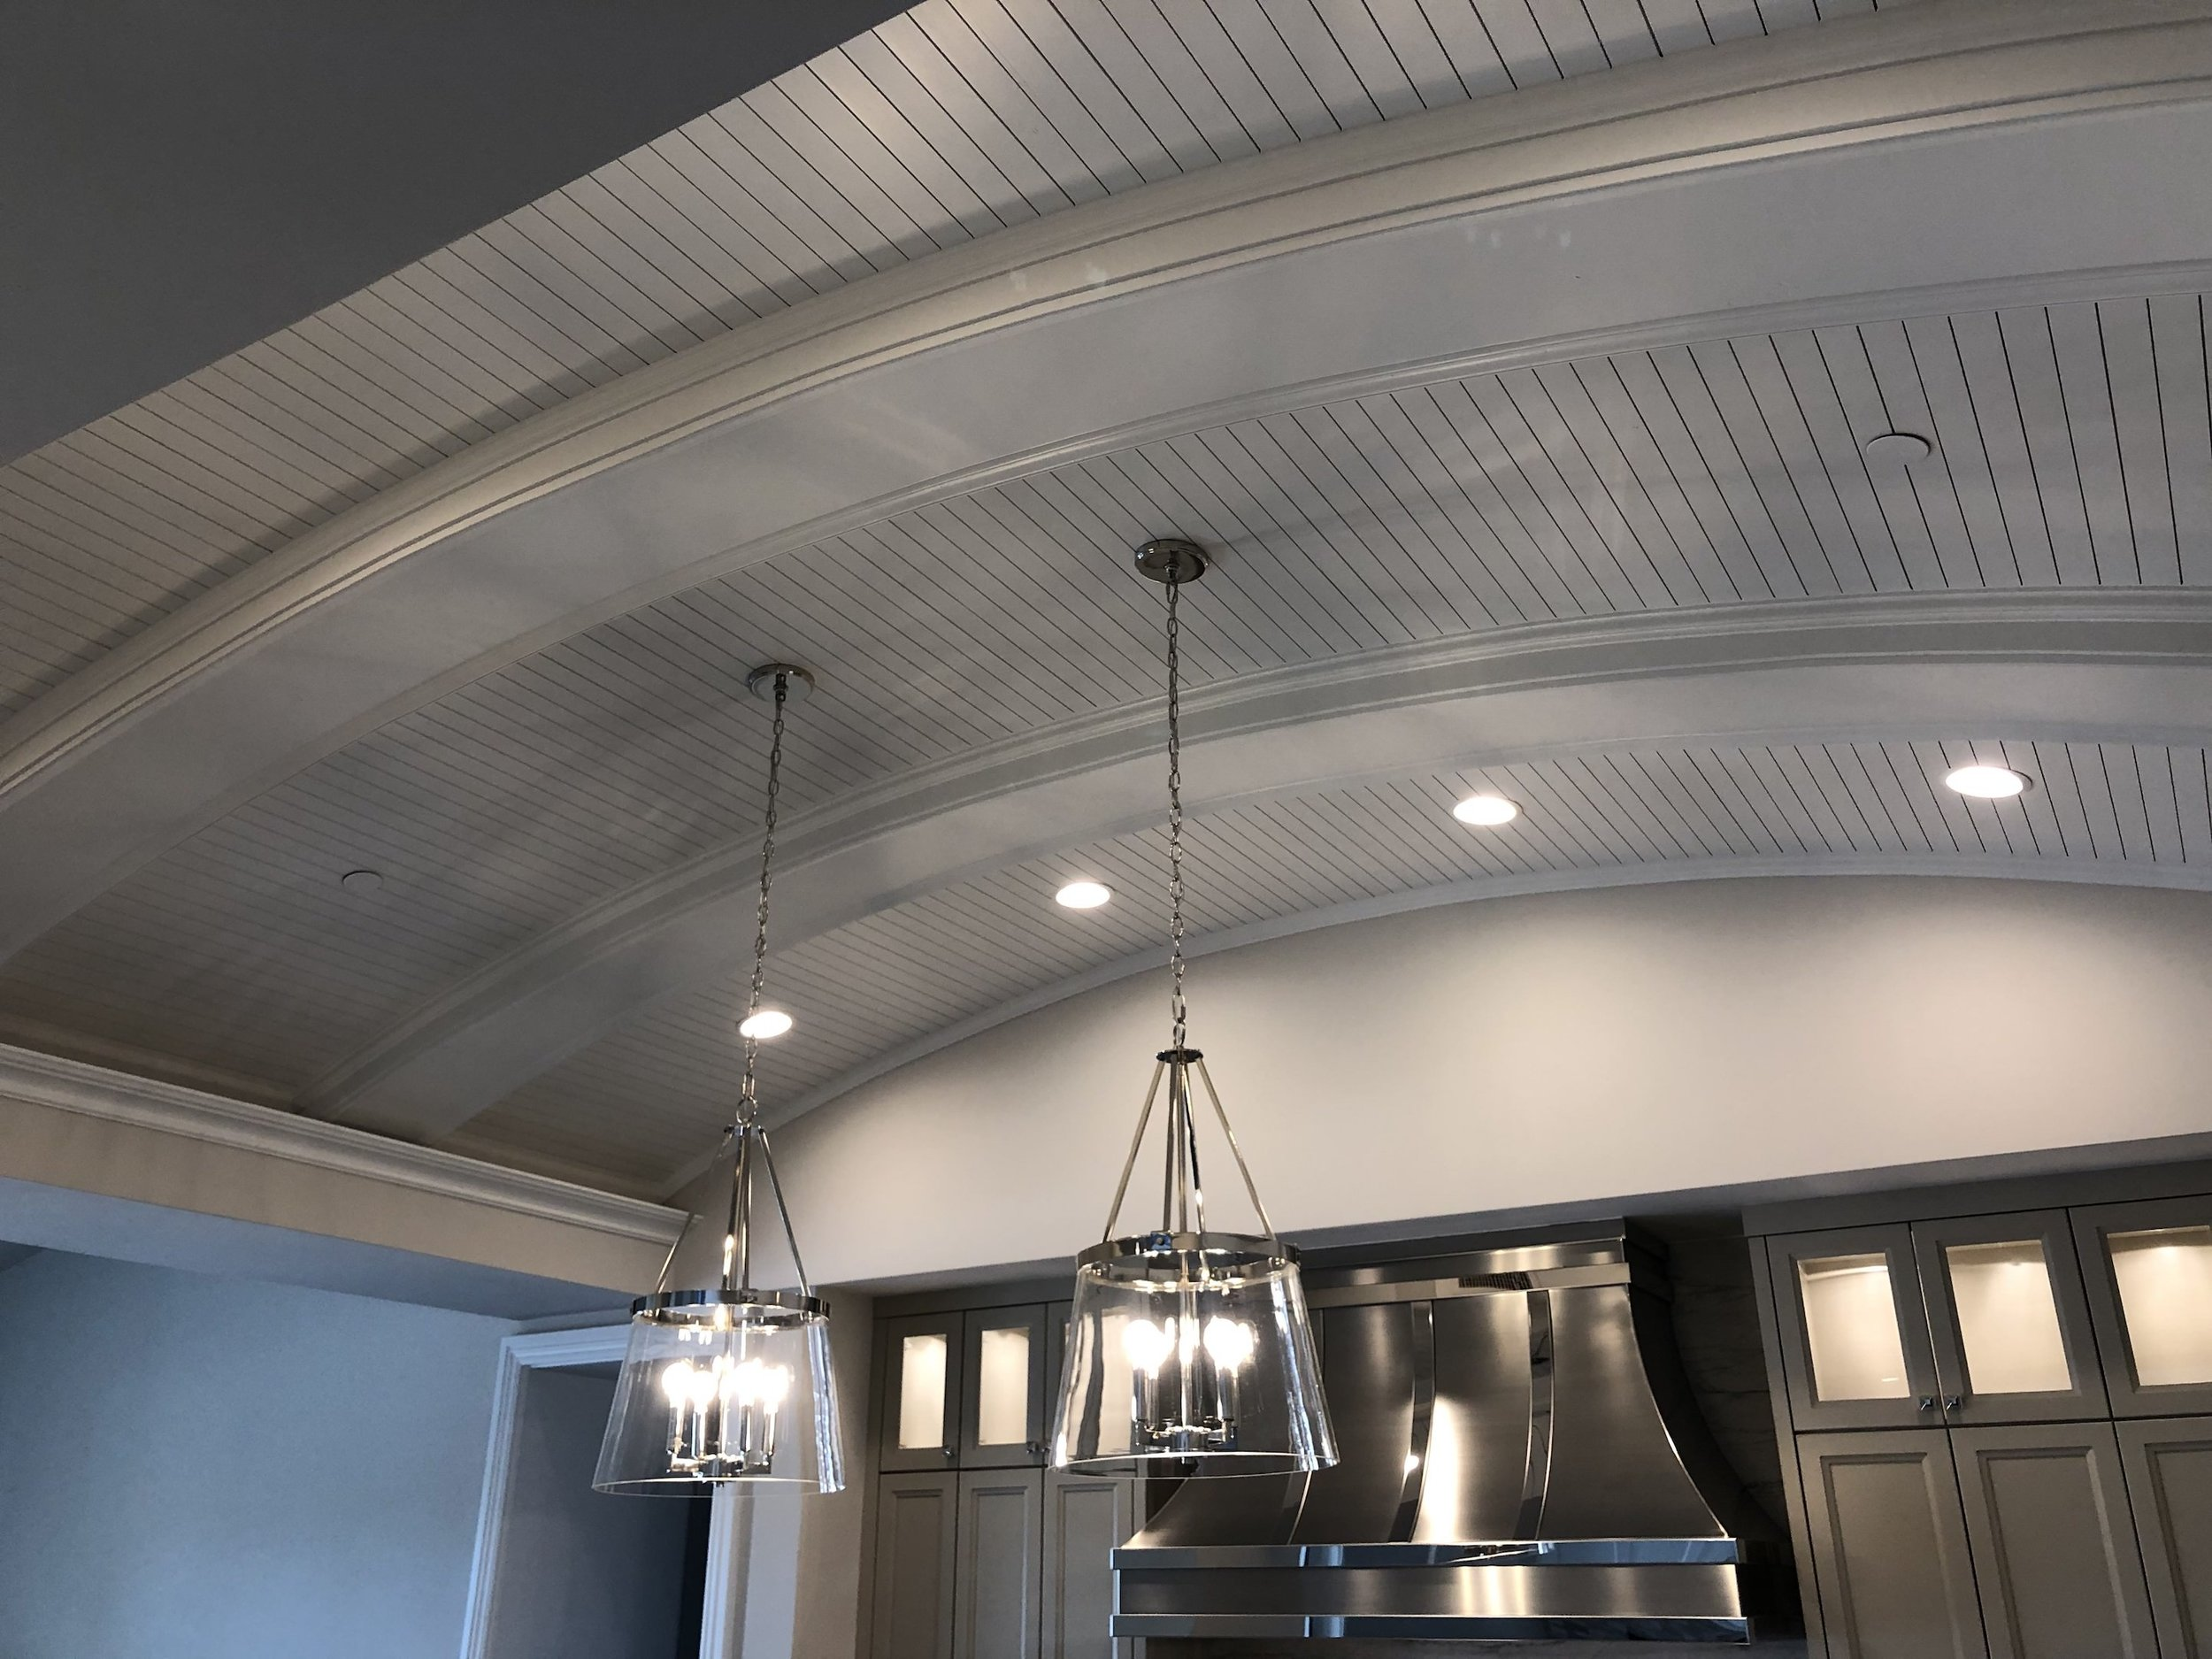 Kitchen_ceiling_1.jpg